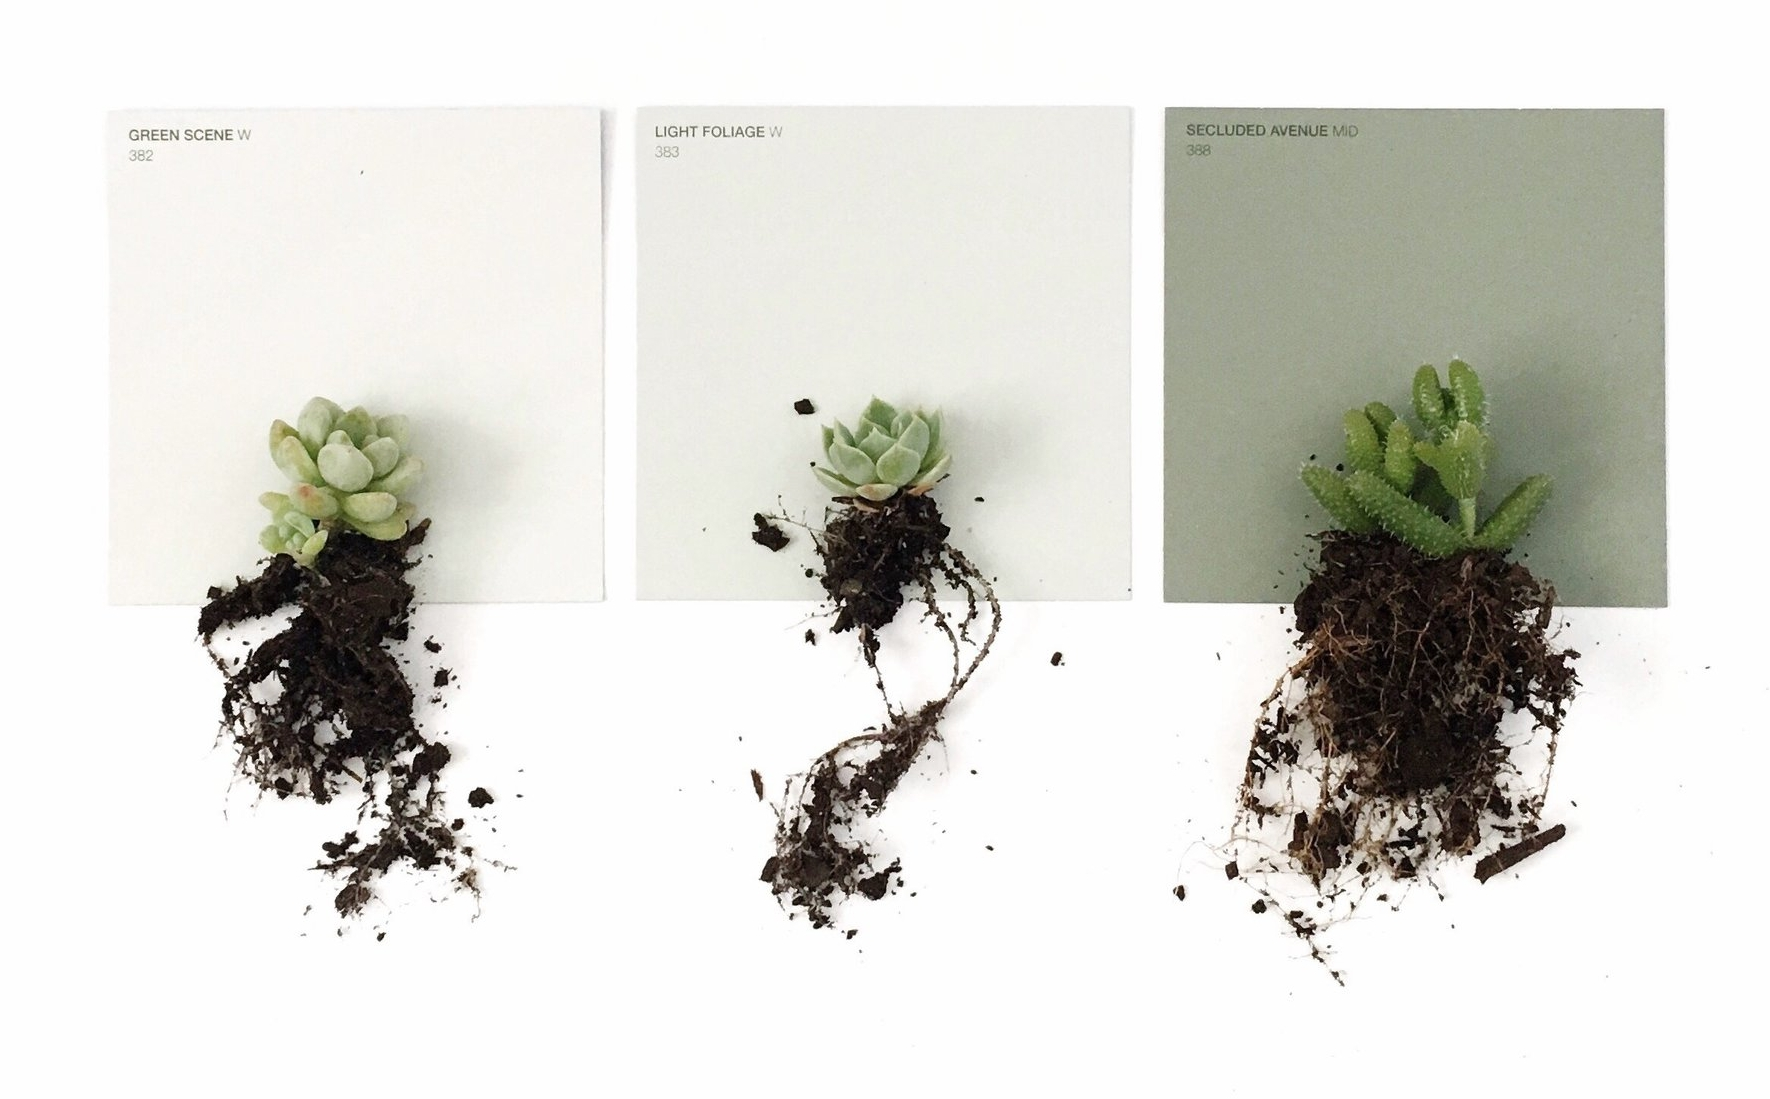 Flatlay using paint swatches and succulents as props.